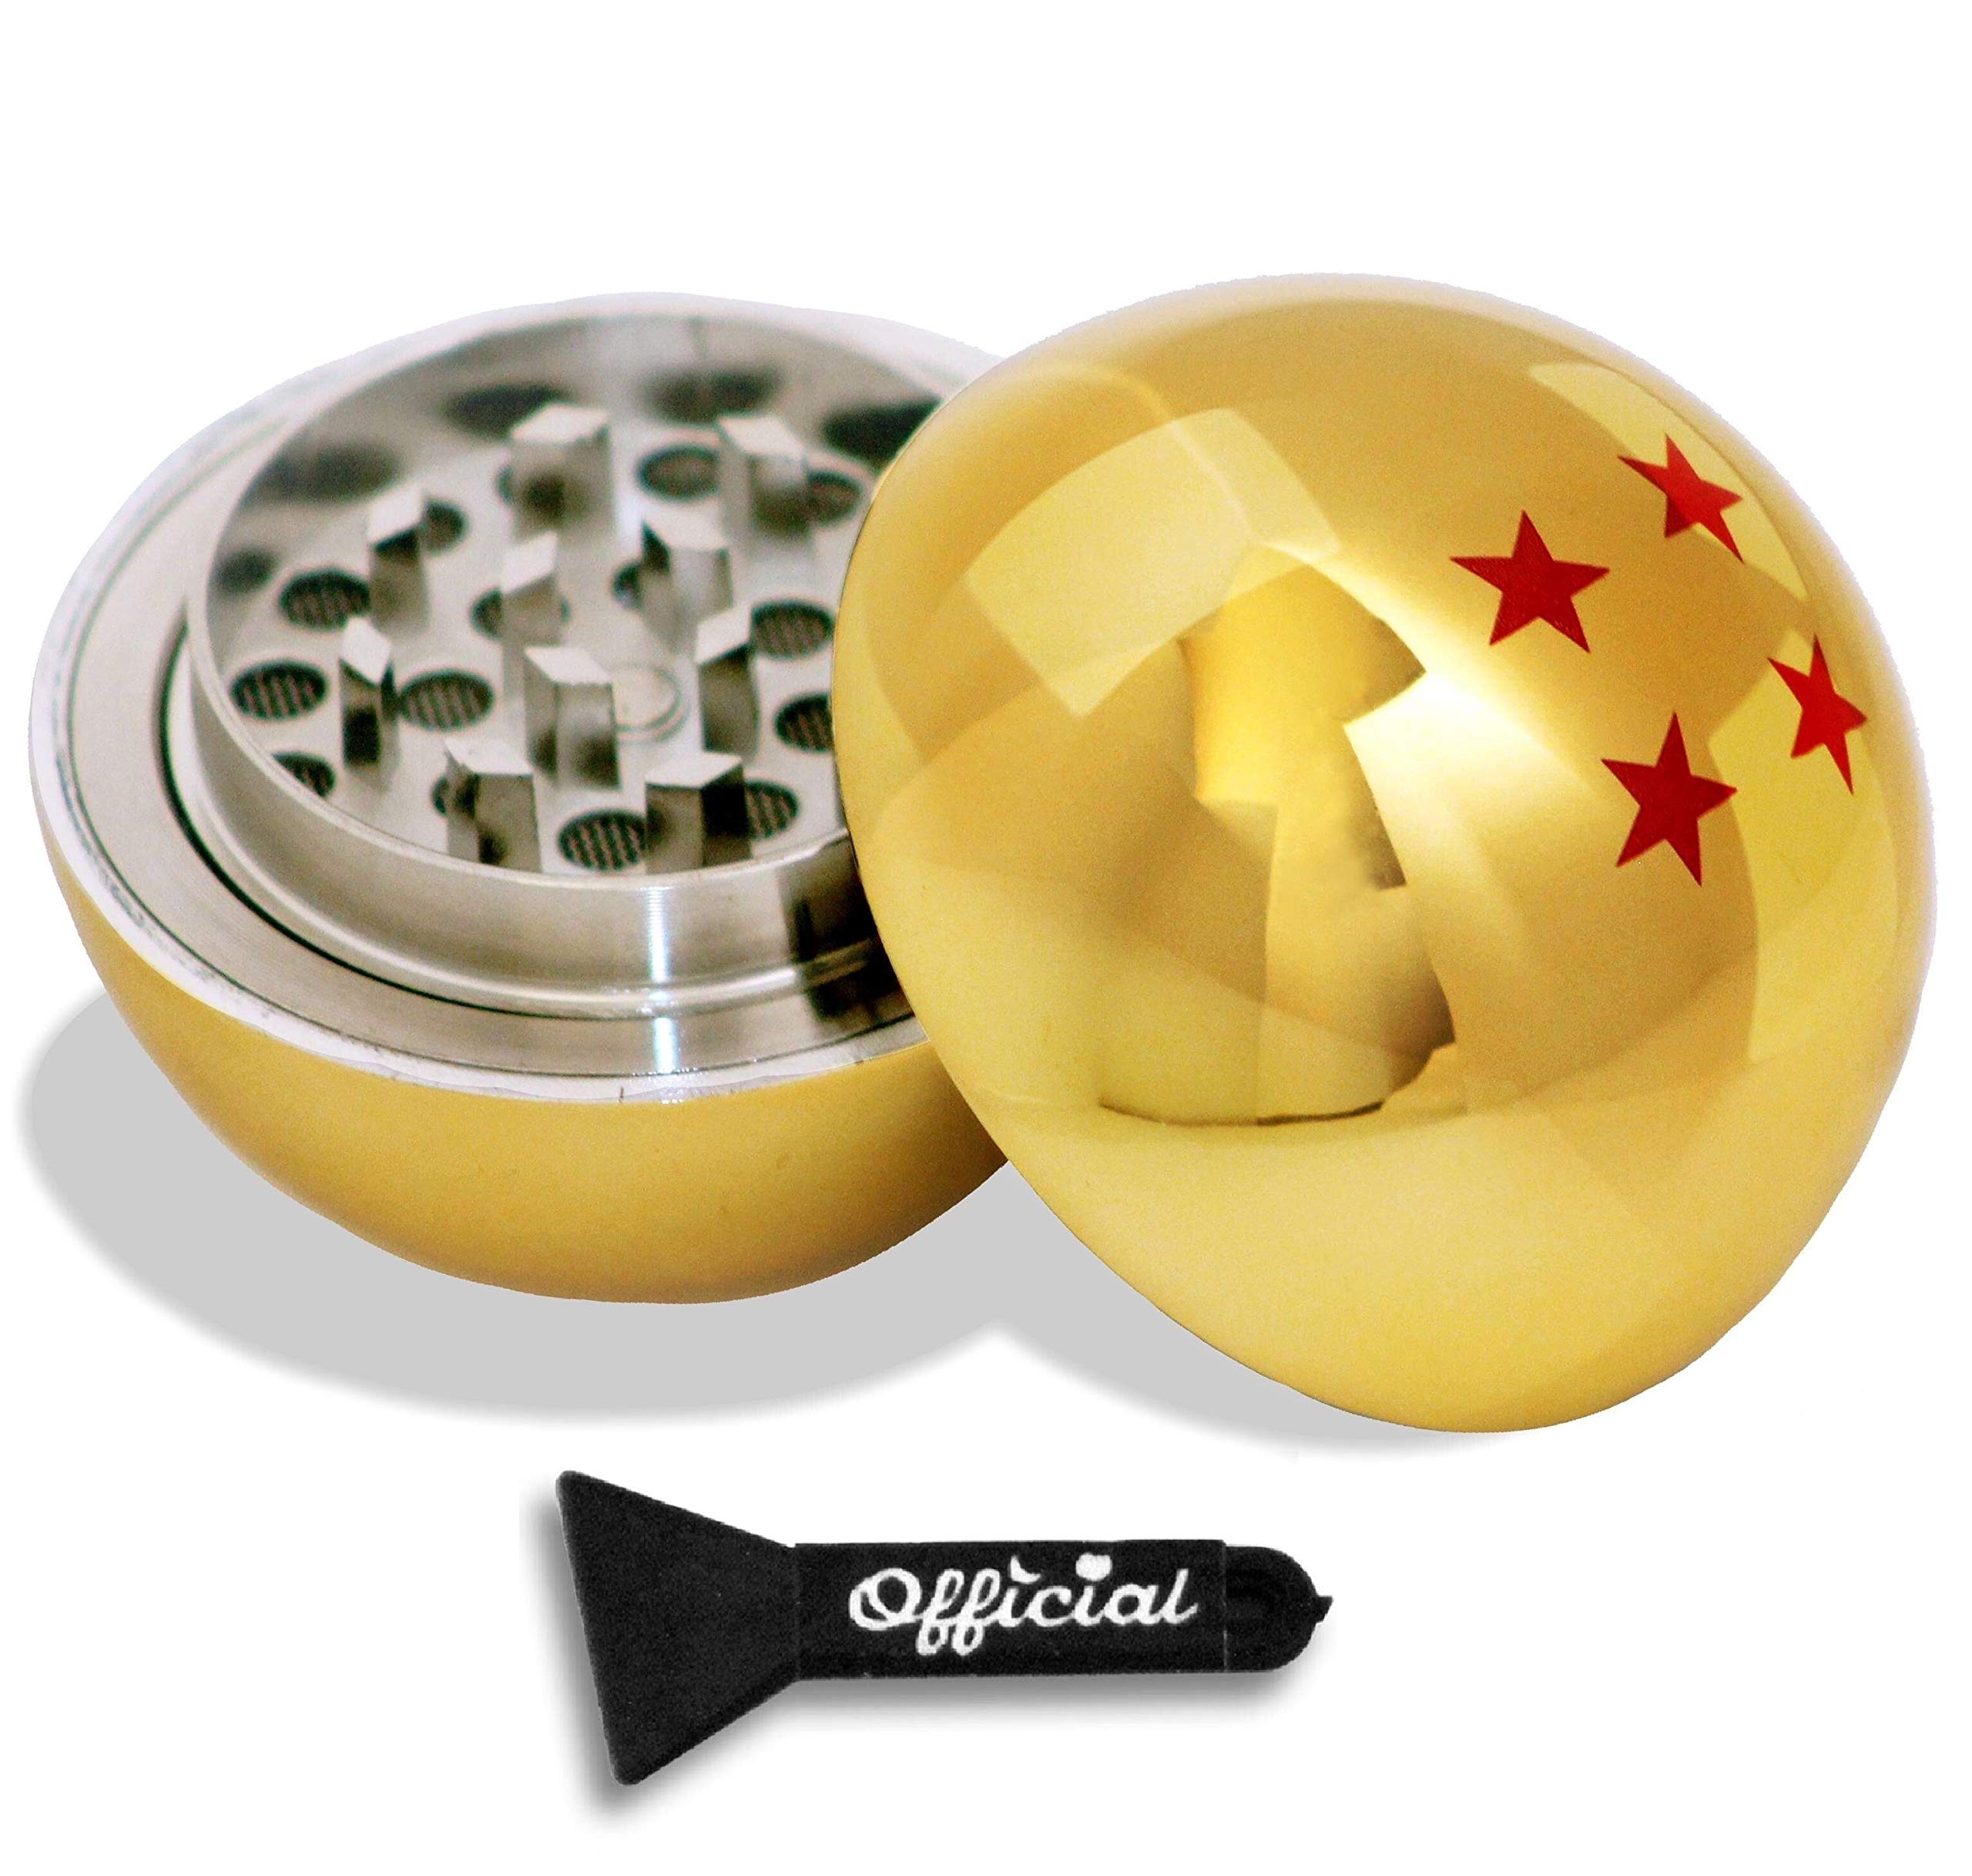 Official Dragon Ball Z Herb Grinder - 4 Star Golden Dragonball Herb & Spice Tool With BONUS Scraper Tool - Dragon Ball Z Gifts - 3 Part Grinder, 2.2 Inches by Nestpark by nestpark